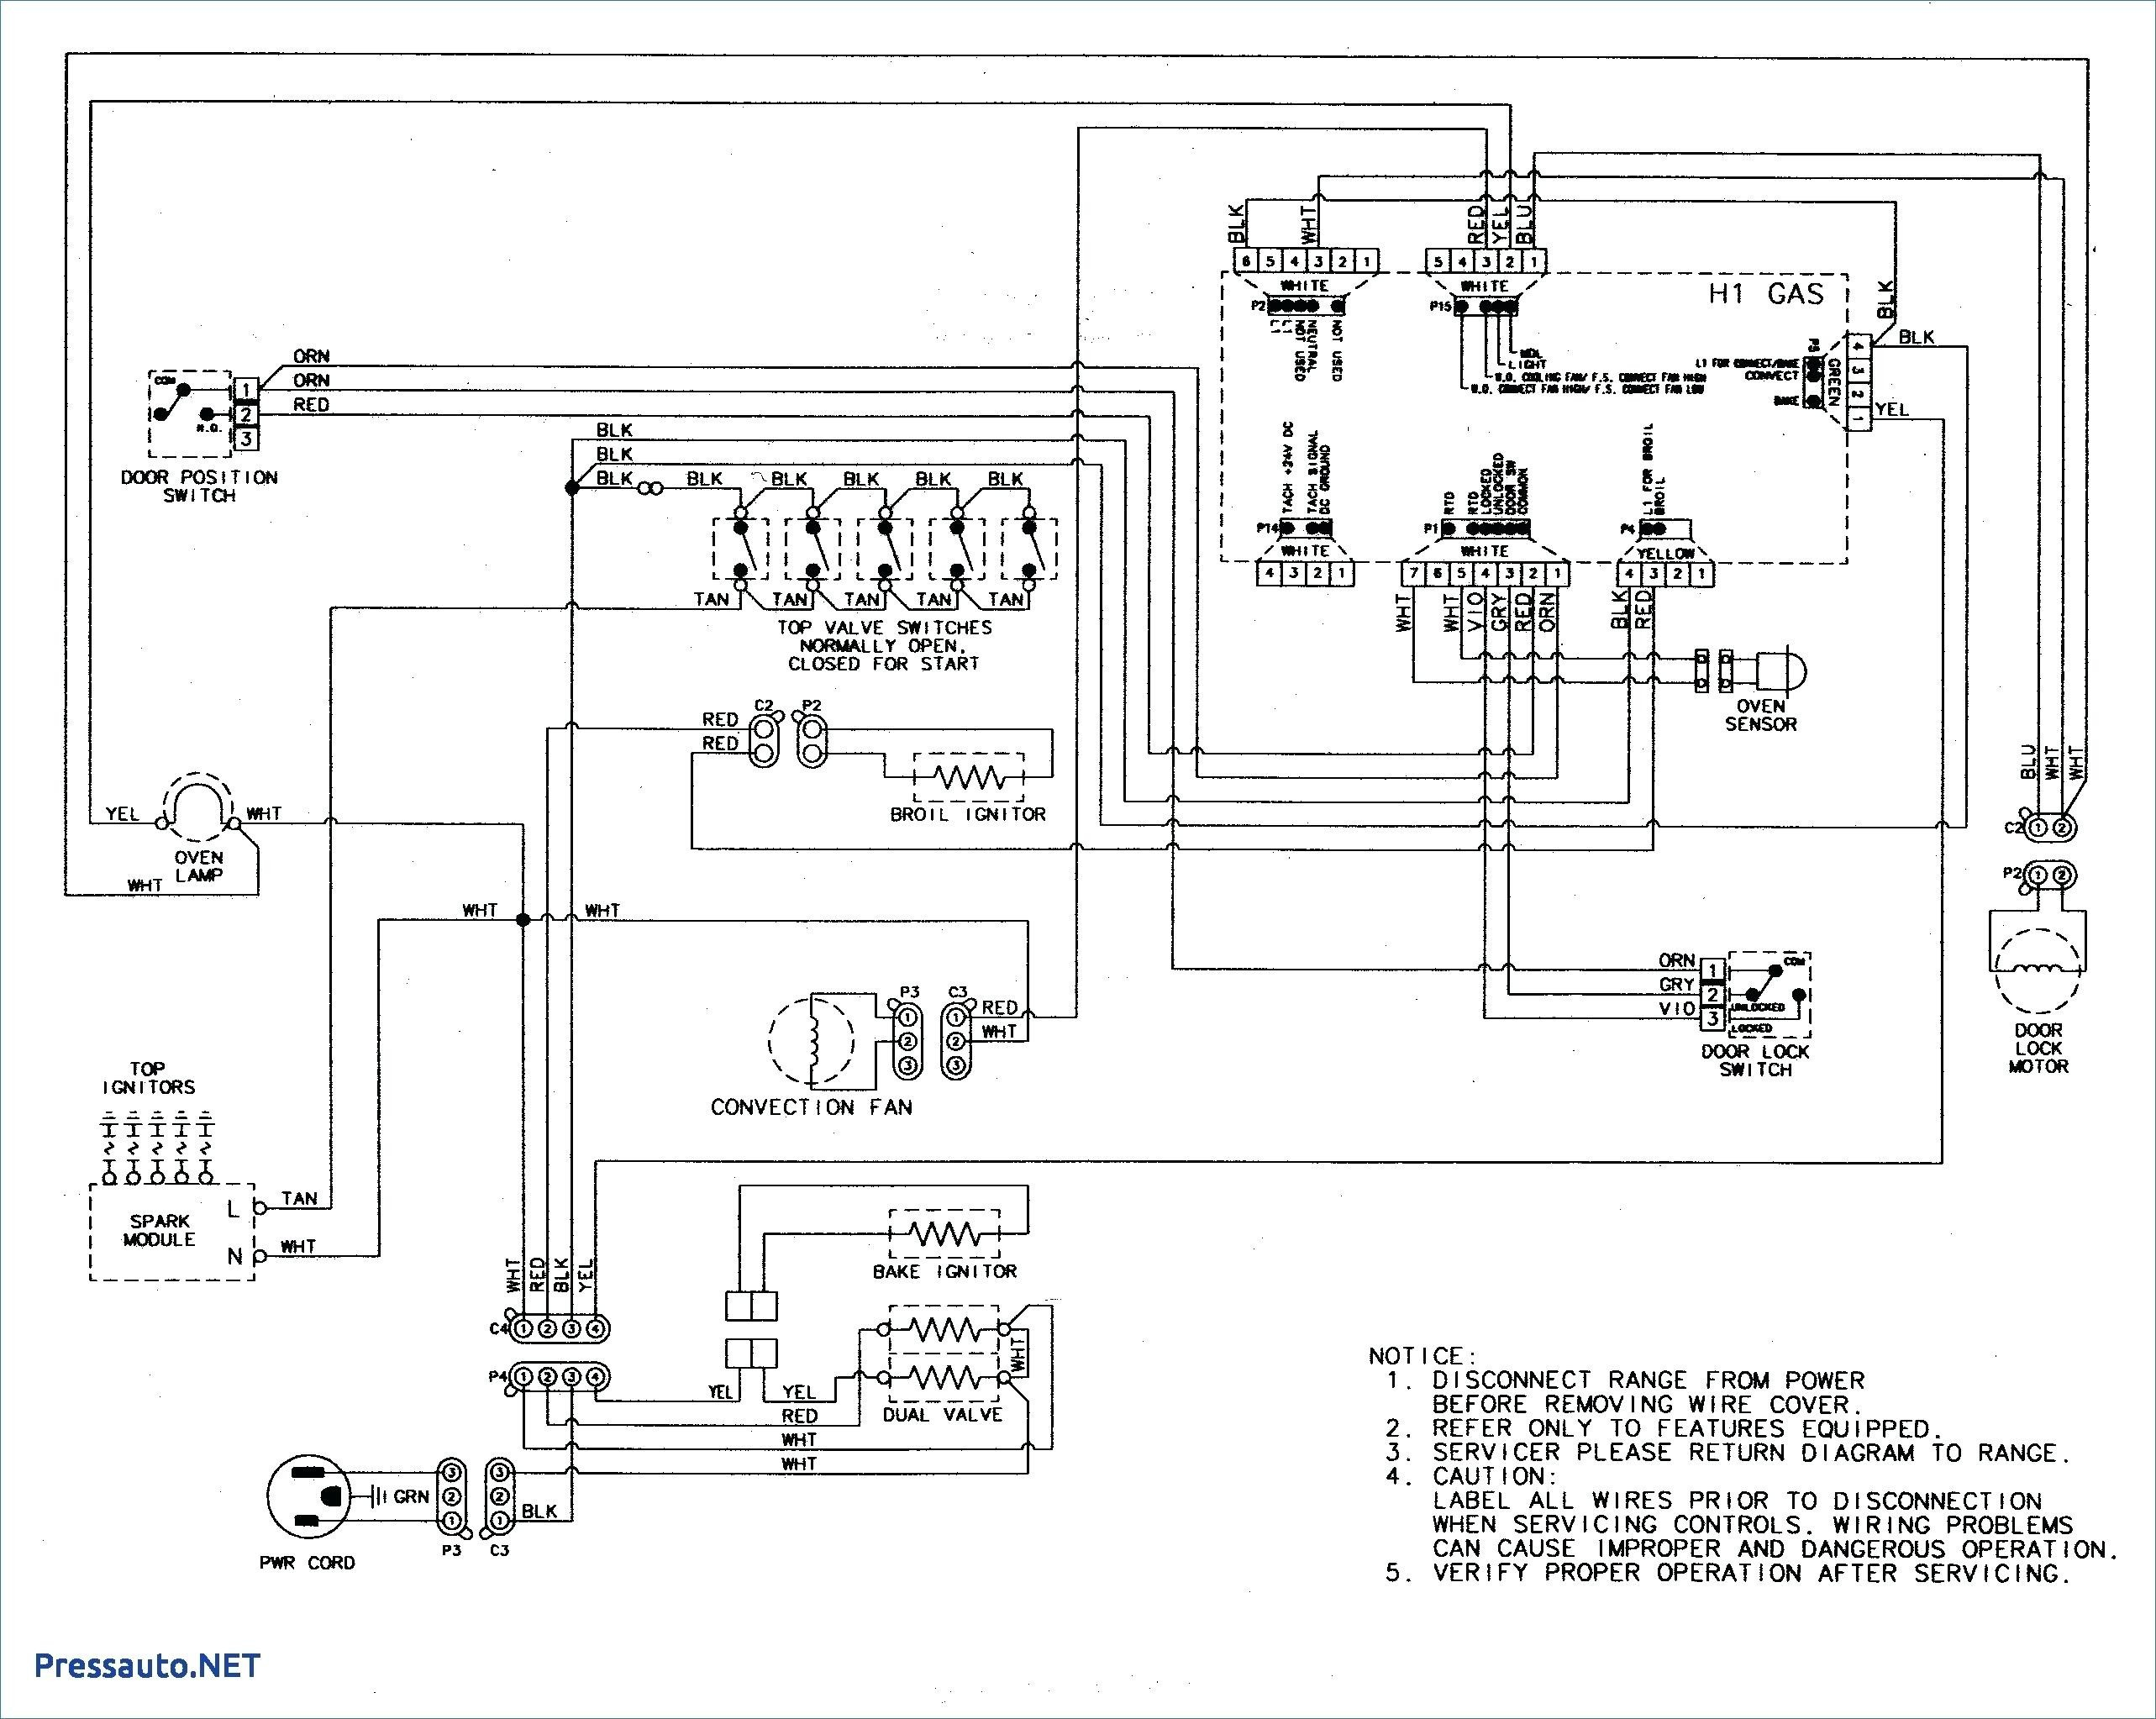 Saab 93 Air Con Wiring Diagram Diagrams 900 Harness 9 3 Ac Trailer For 2005 85 Turbo Alarm